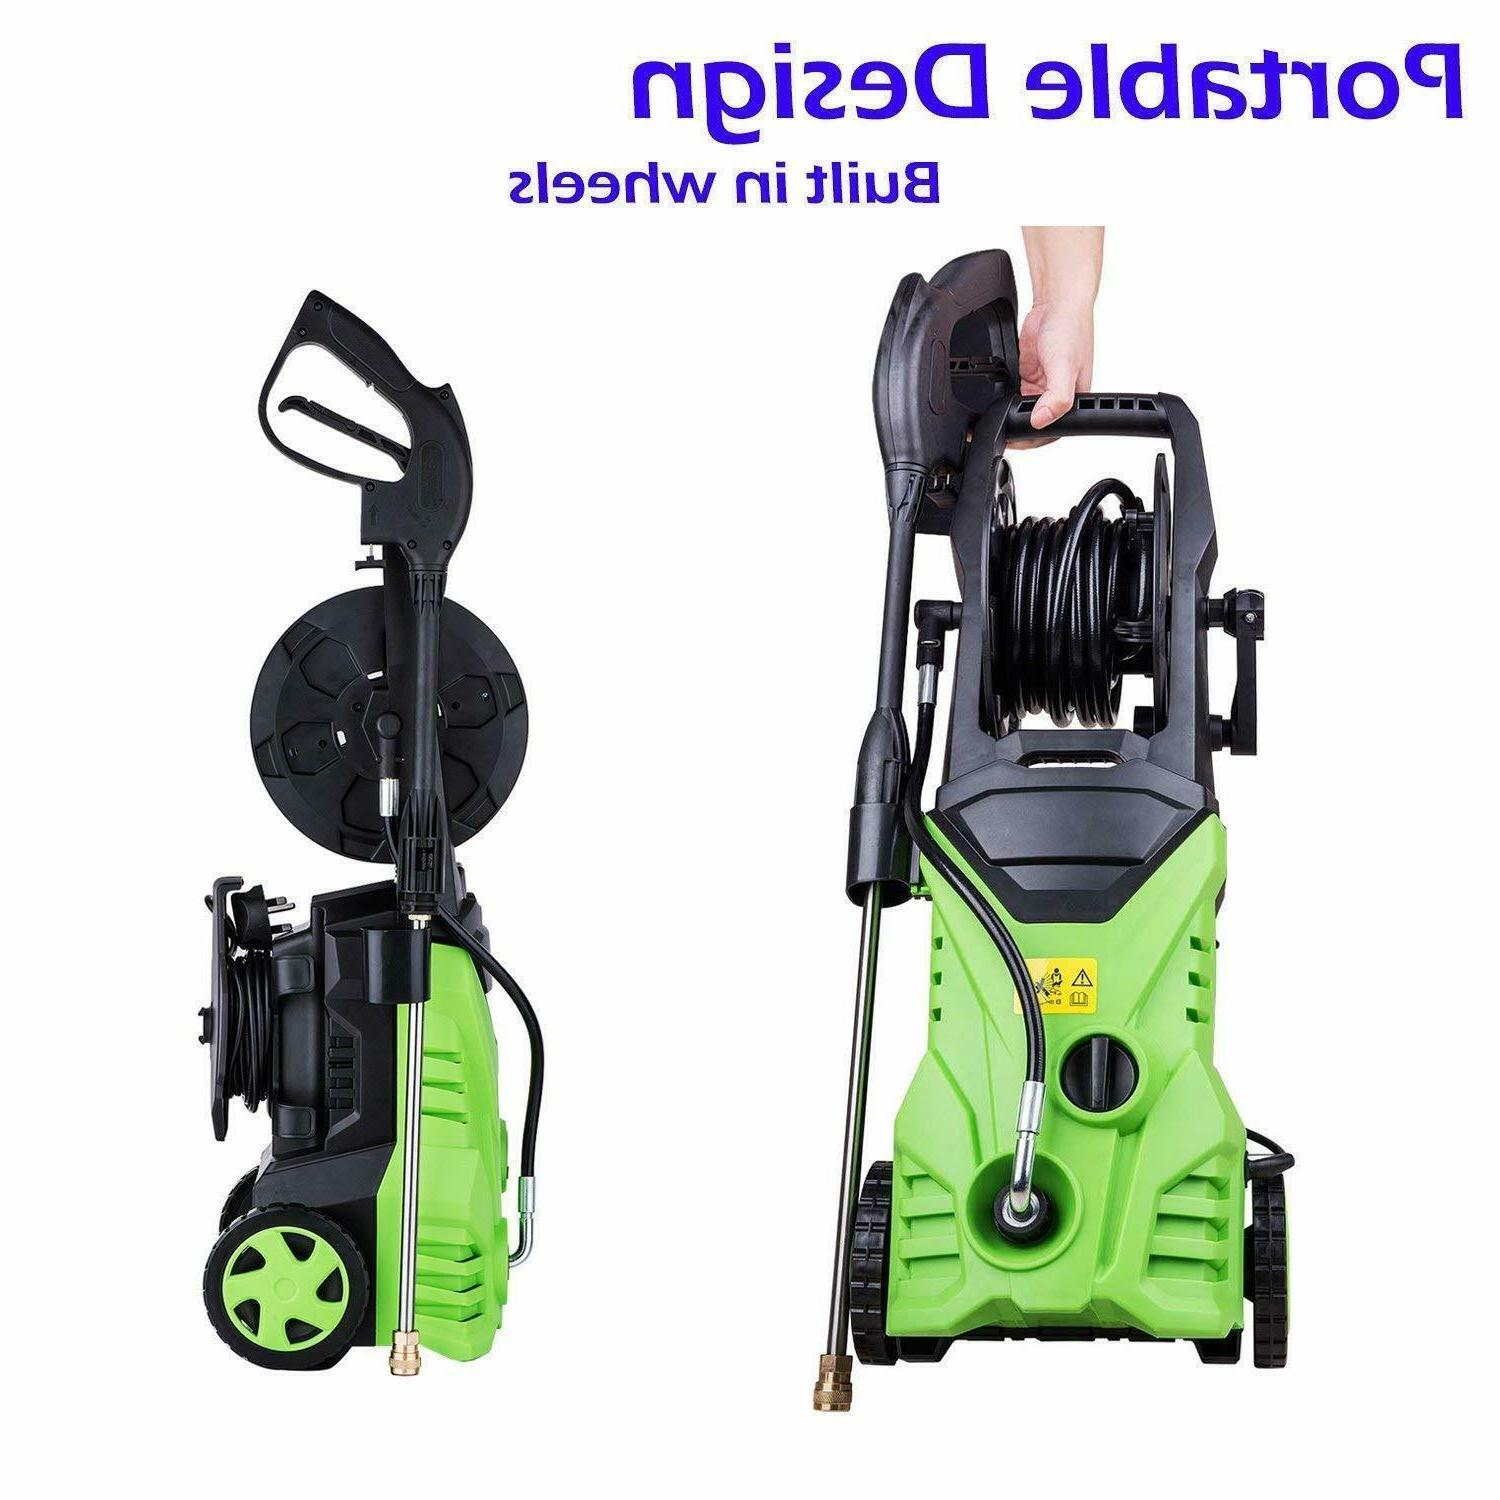 3000PSI Electric Washer,1800W Power High Pressure Washer